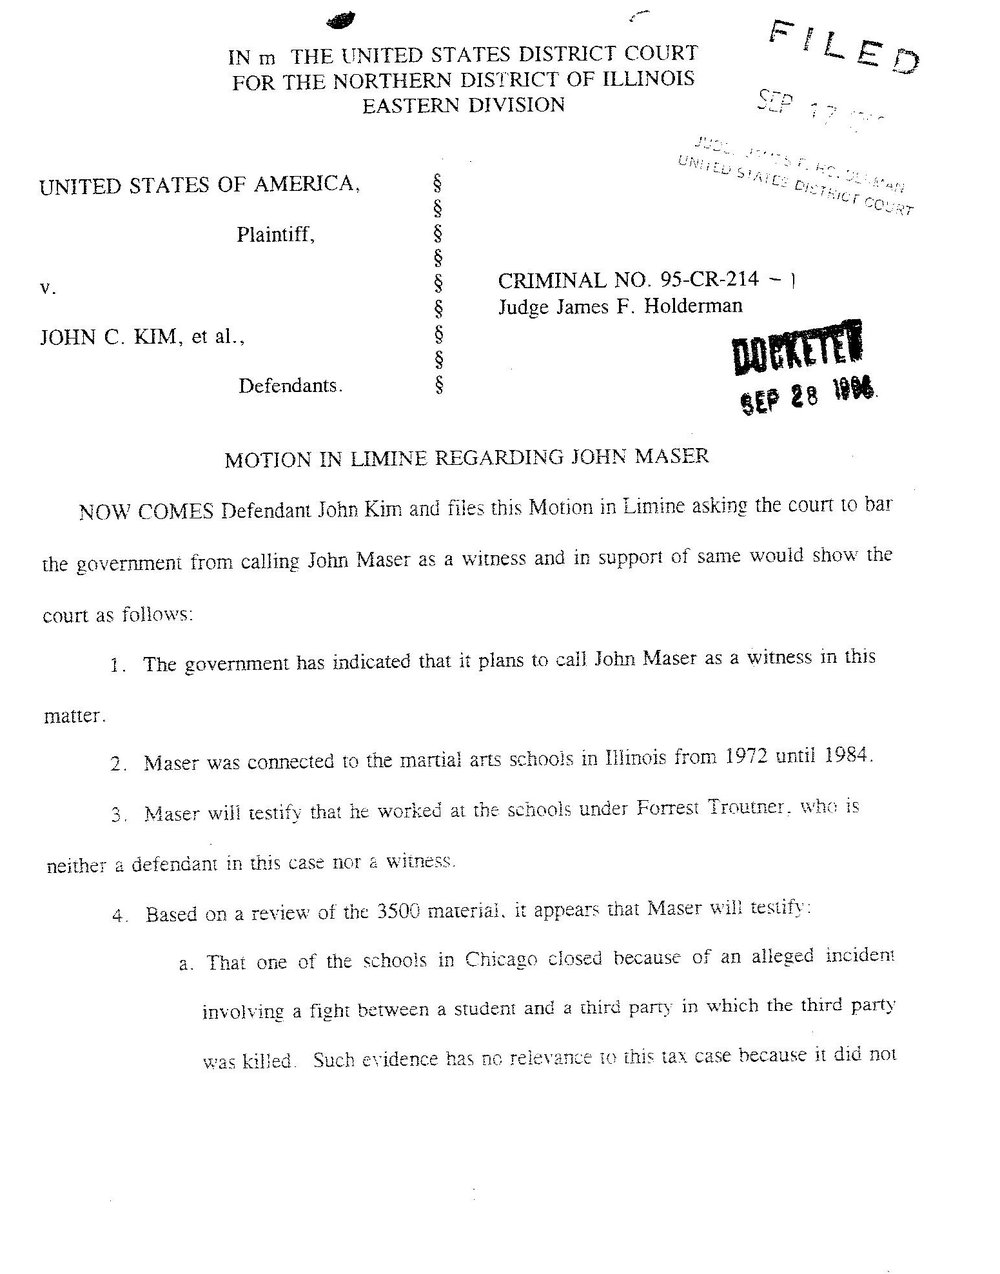 United States of AMERICA v. john c. kim  et al...  motion in limine